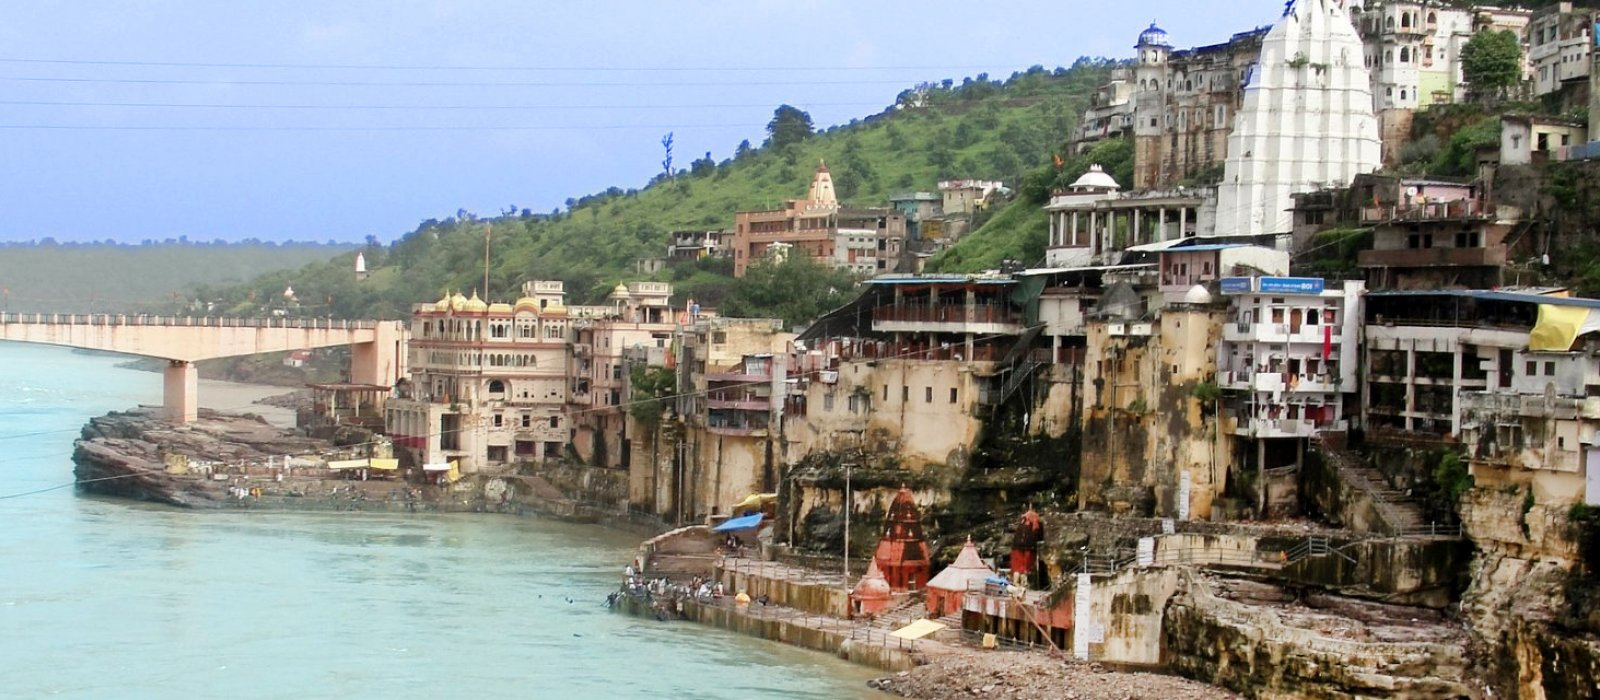 Omkareshwar and Mahakaleshwar